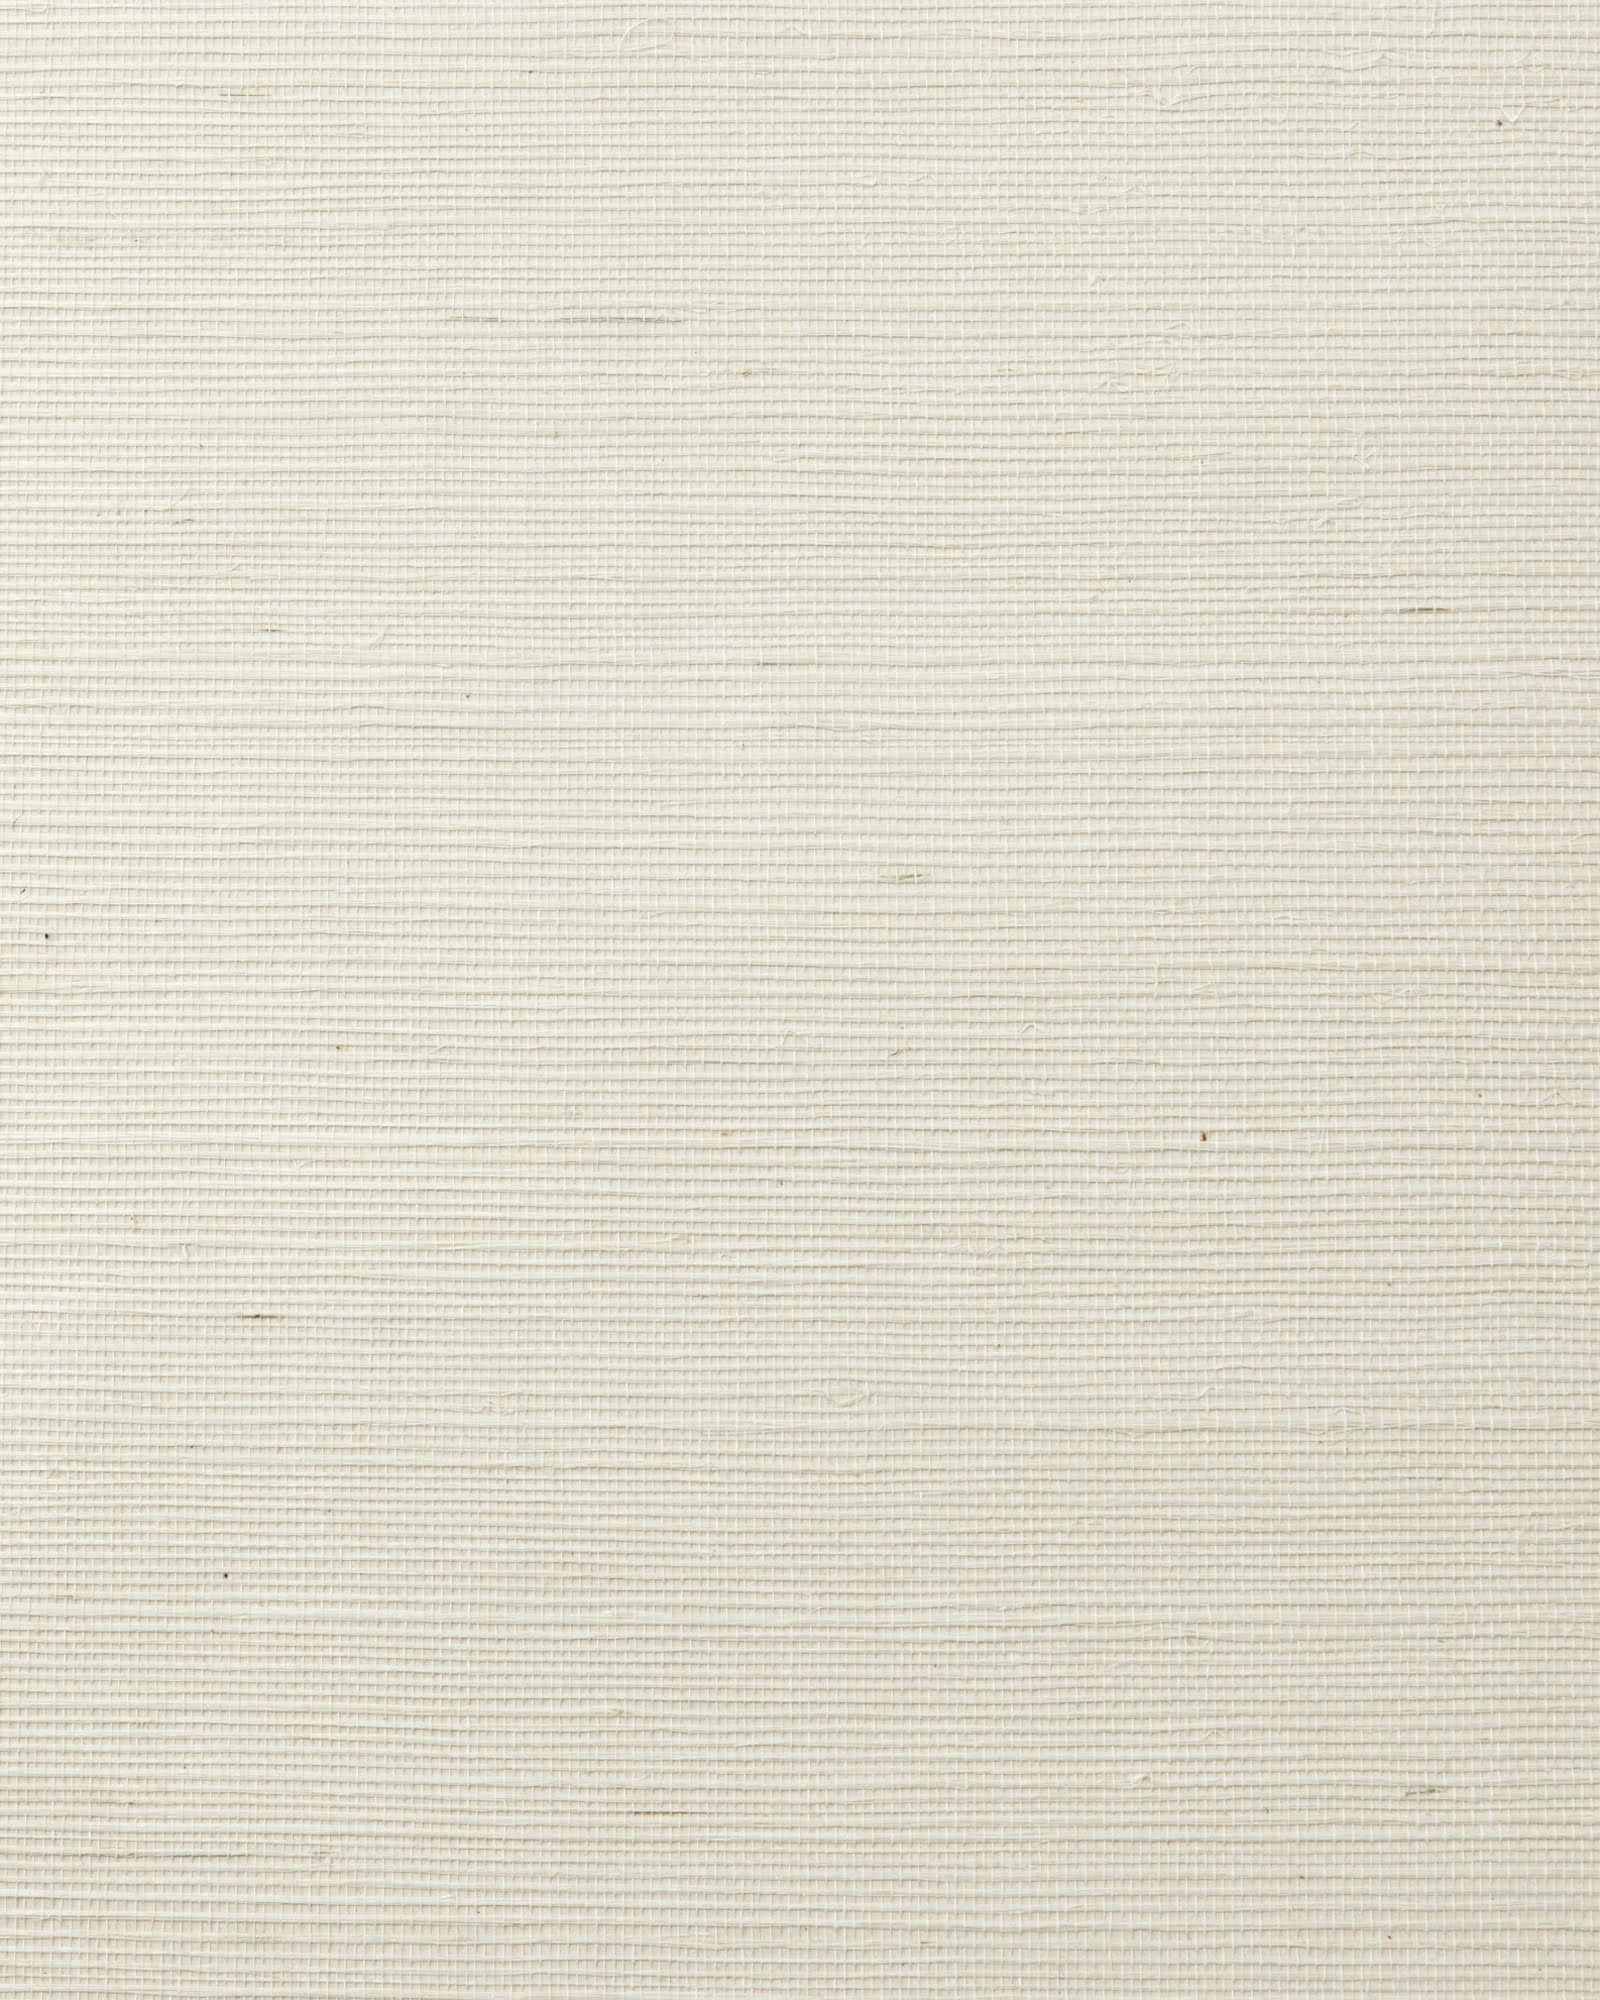 Grasscloth Wallcovering Swatch, Ecru